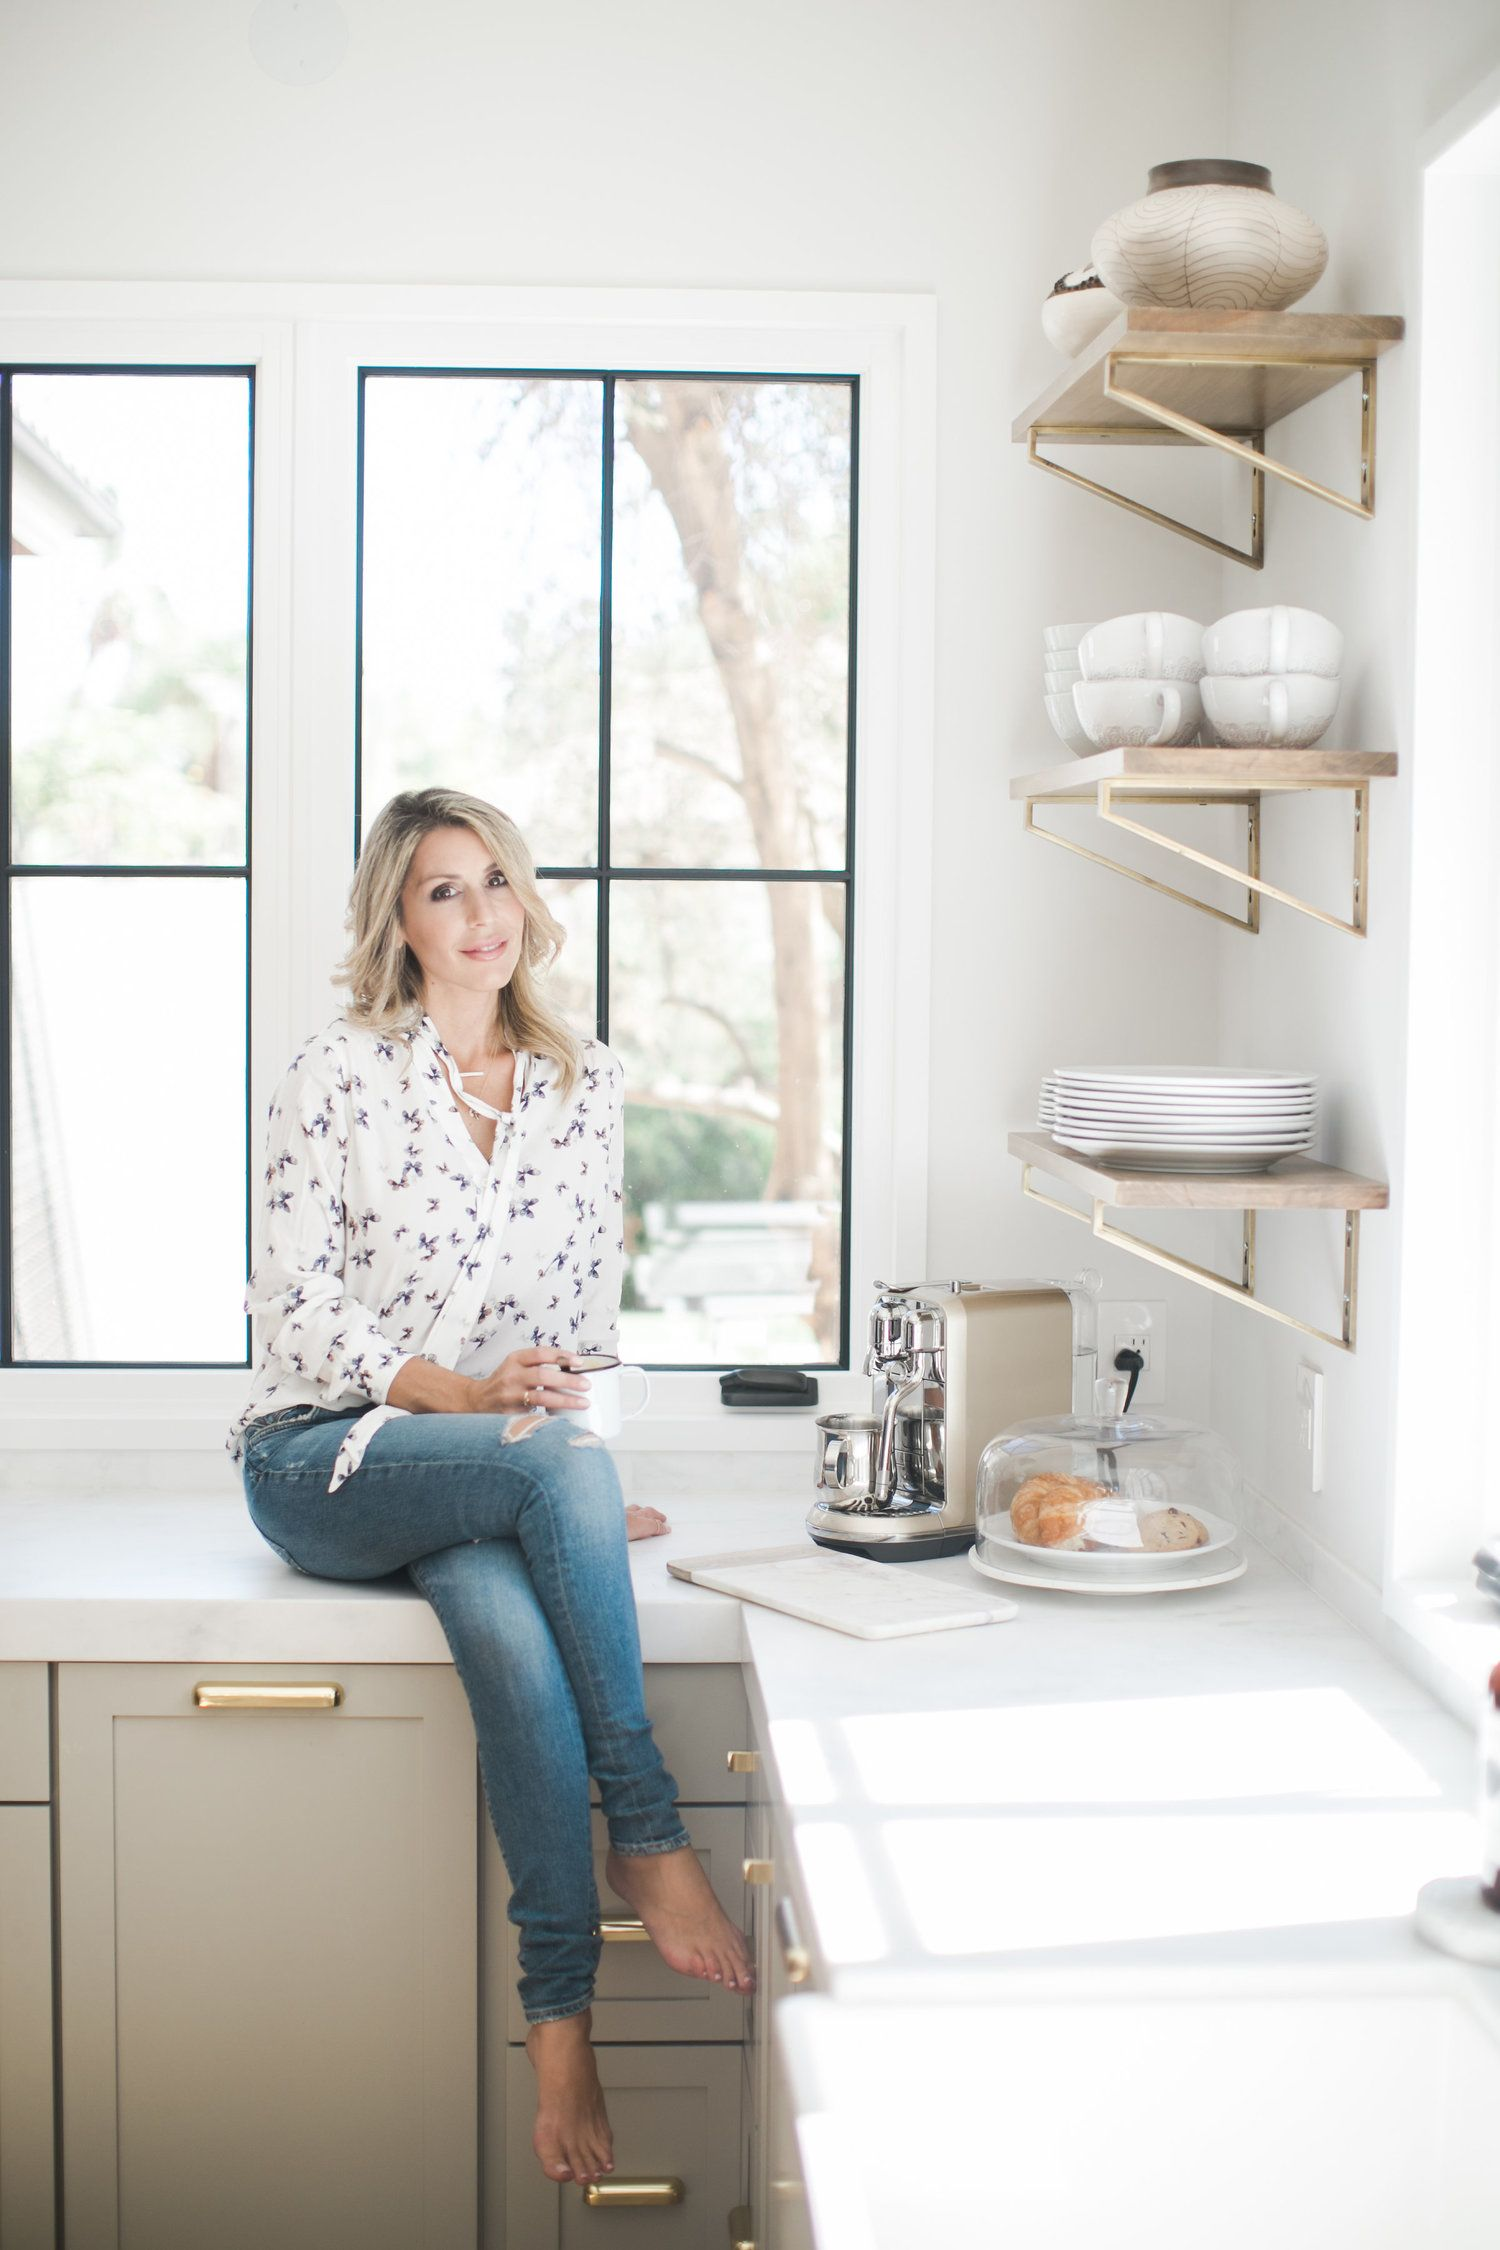 Cher House Designer Cher Underwood In Her Gorgeous Kitchen Remodel In Corona Ca Marble Counters Grey Ca Inspiring Spaces Gorgeous Kitchens Beautiful Kitchens